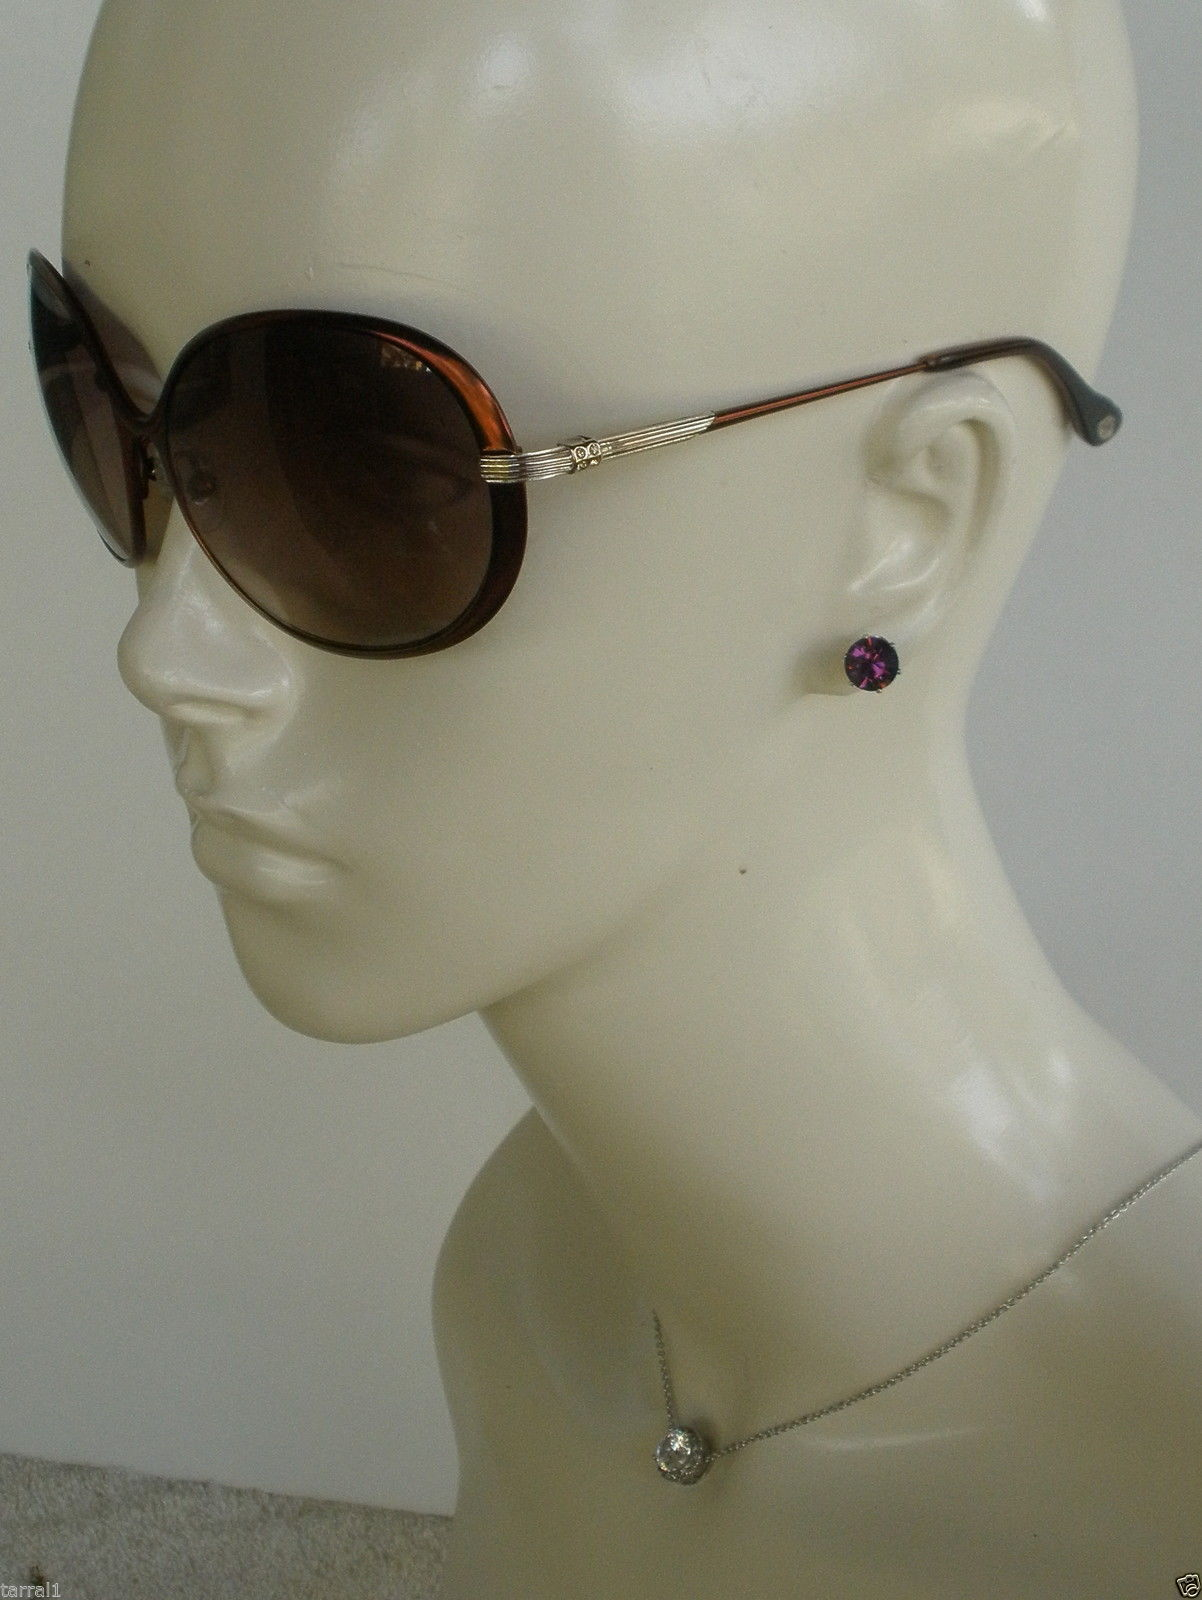 New Lulu Guinness L518 Sunglasses With Patent Leather Case & Cloth 100% UV